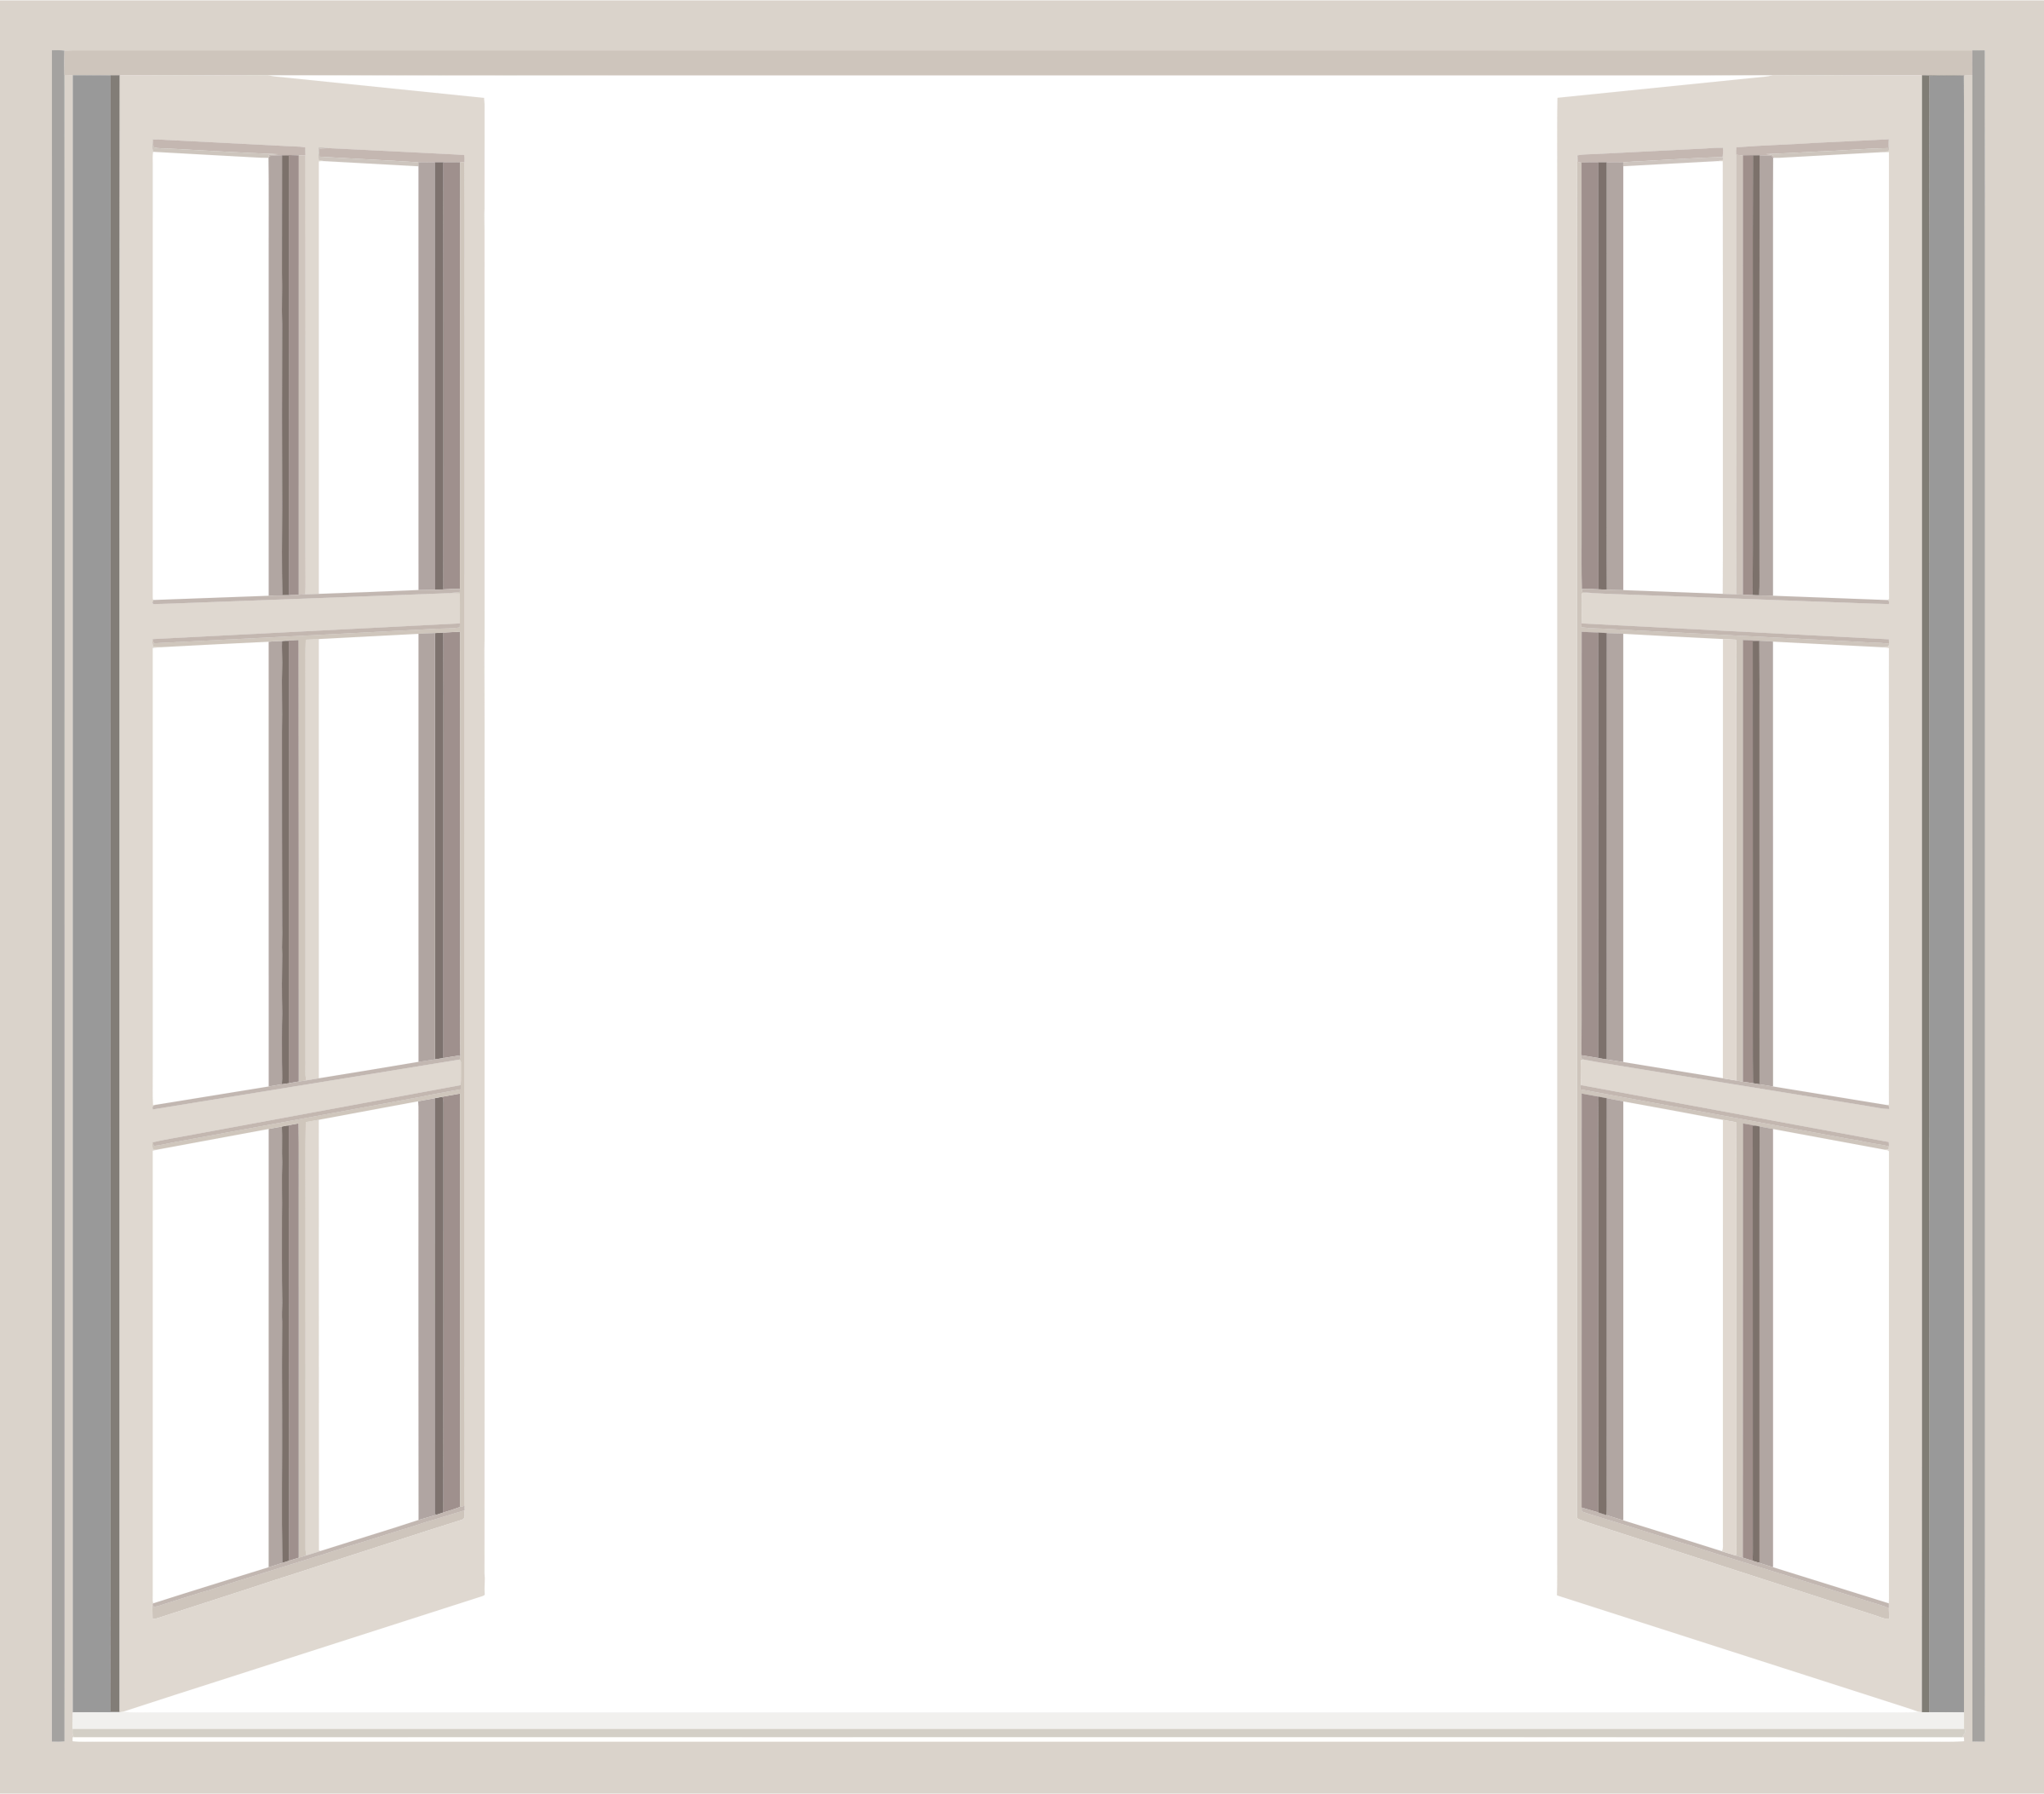 Window clipart opened window. Open windows icons png